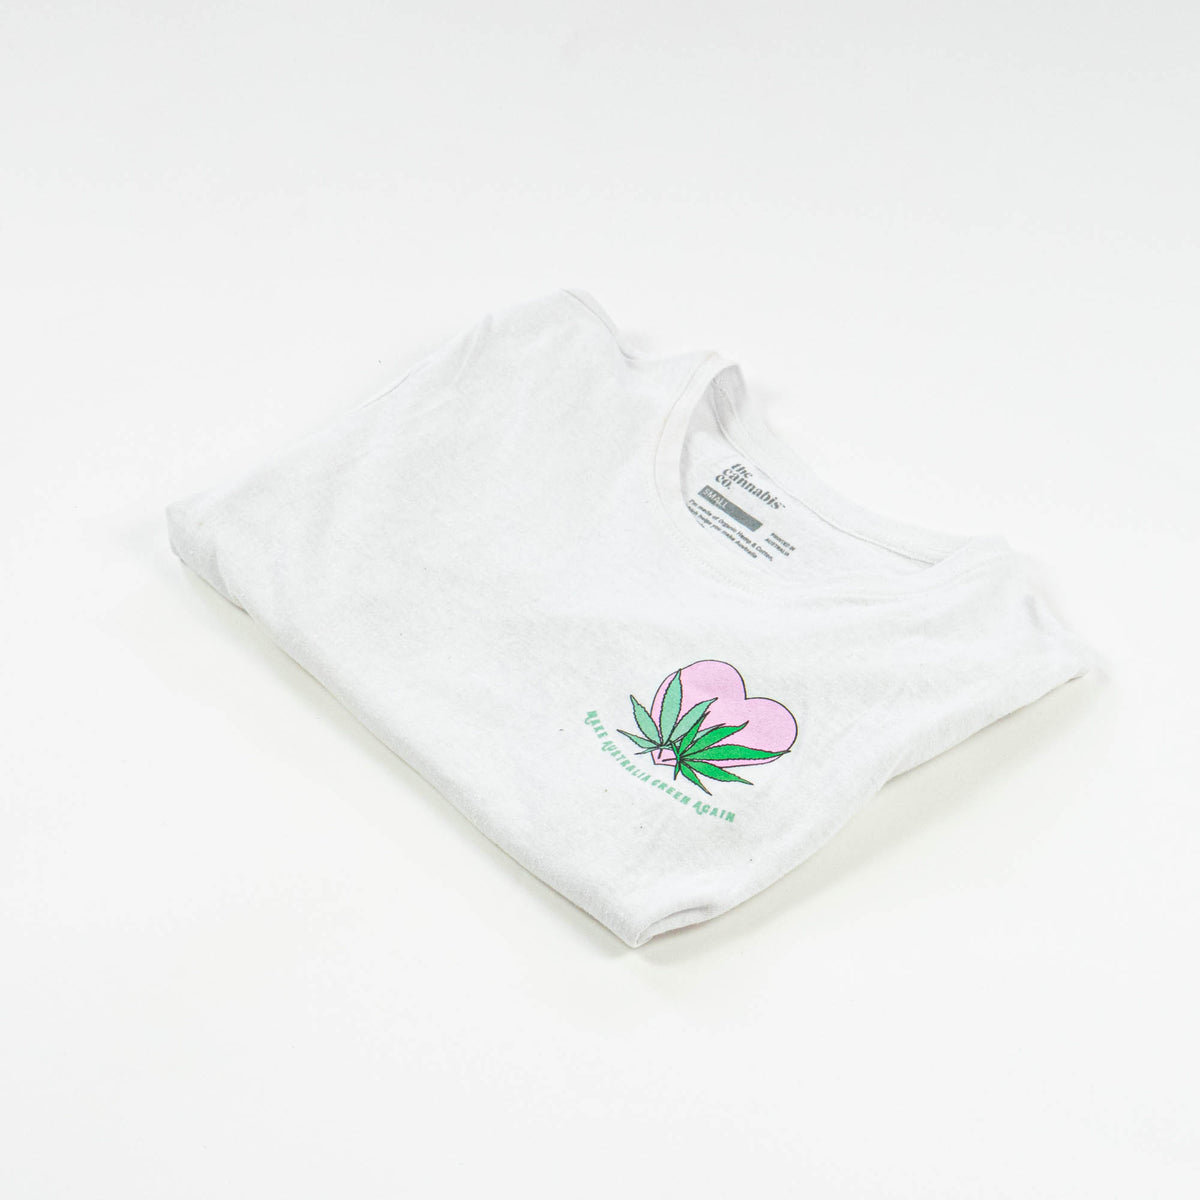 White tee by The cannais company